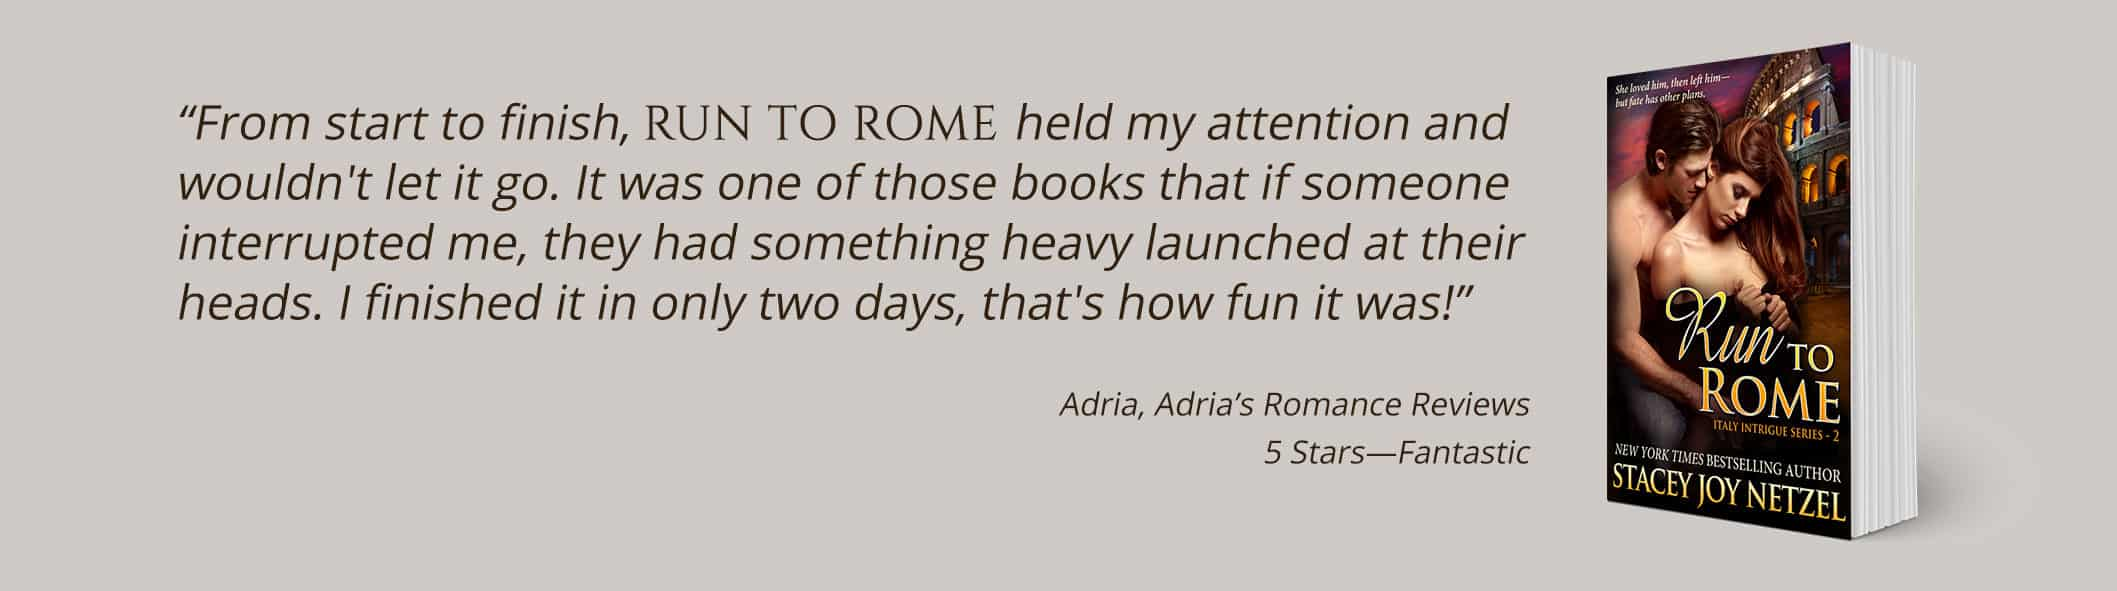 Run to Rome by Stacey Joy Netzel